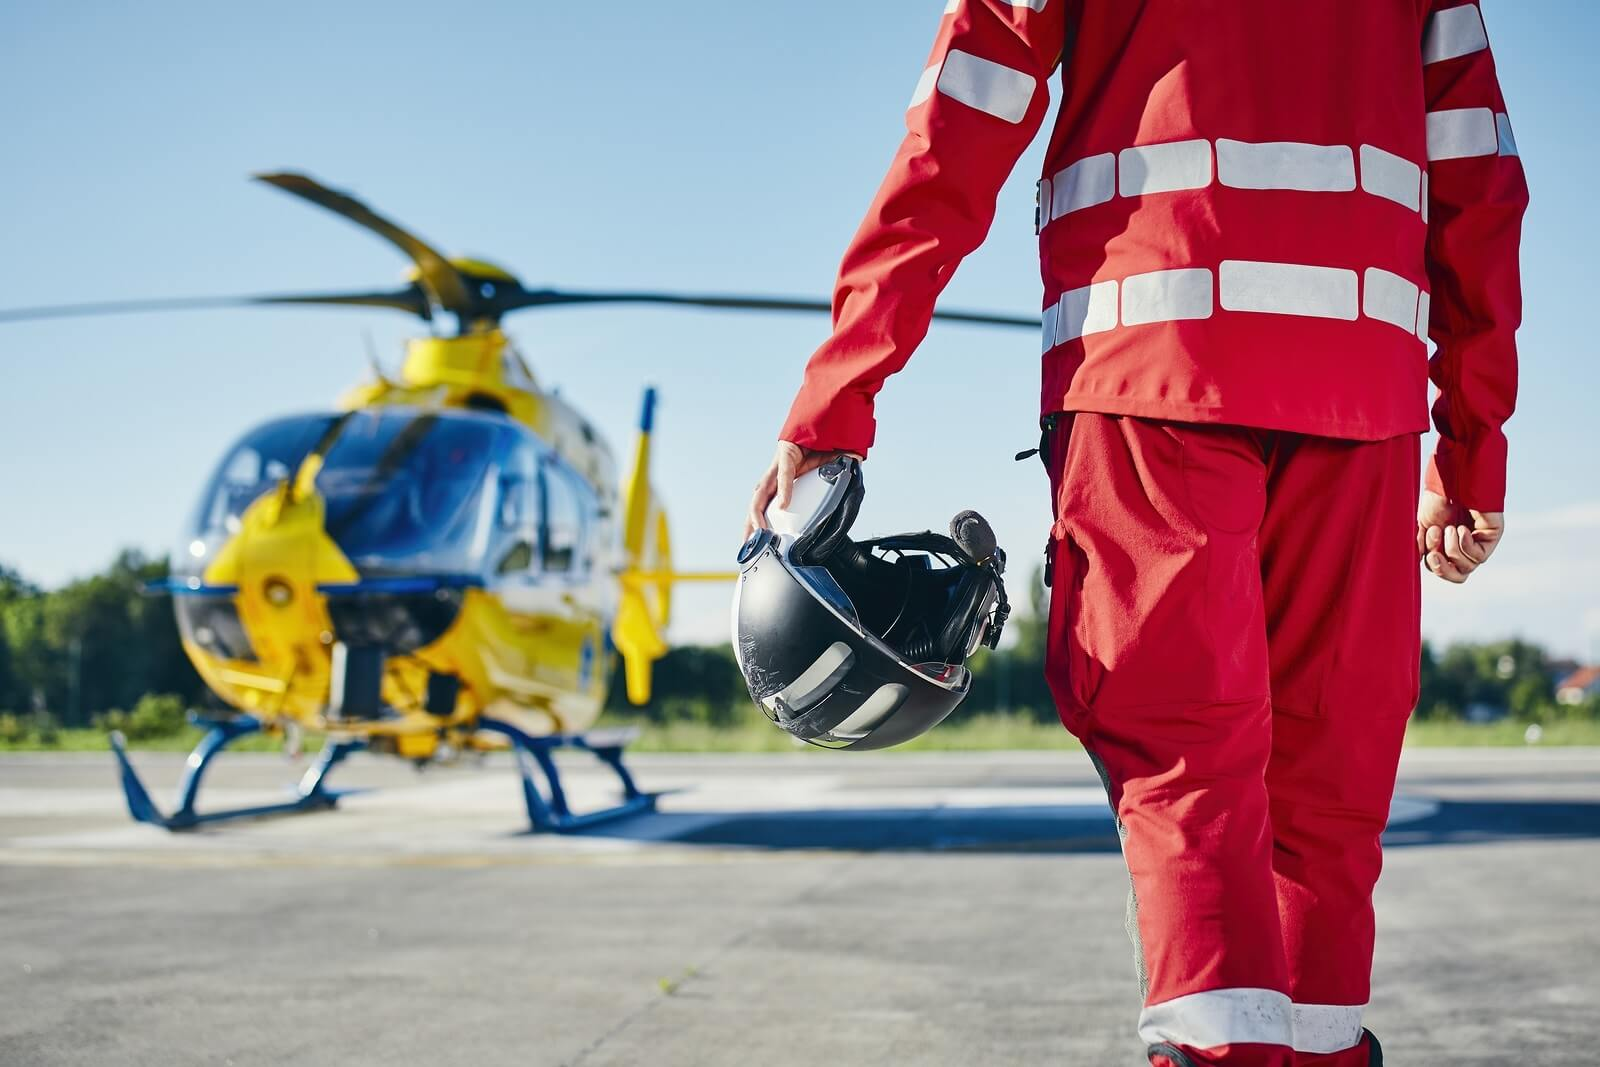 Helicopter injury lawyer